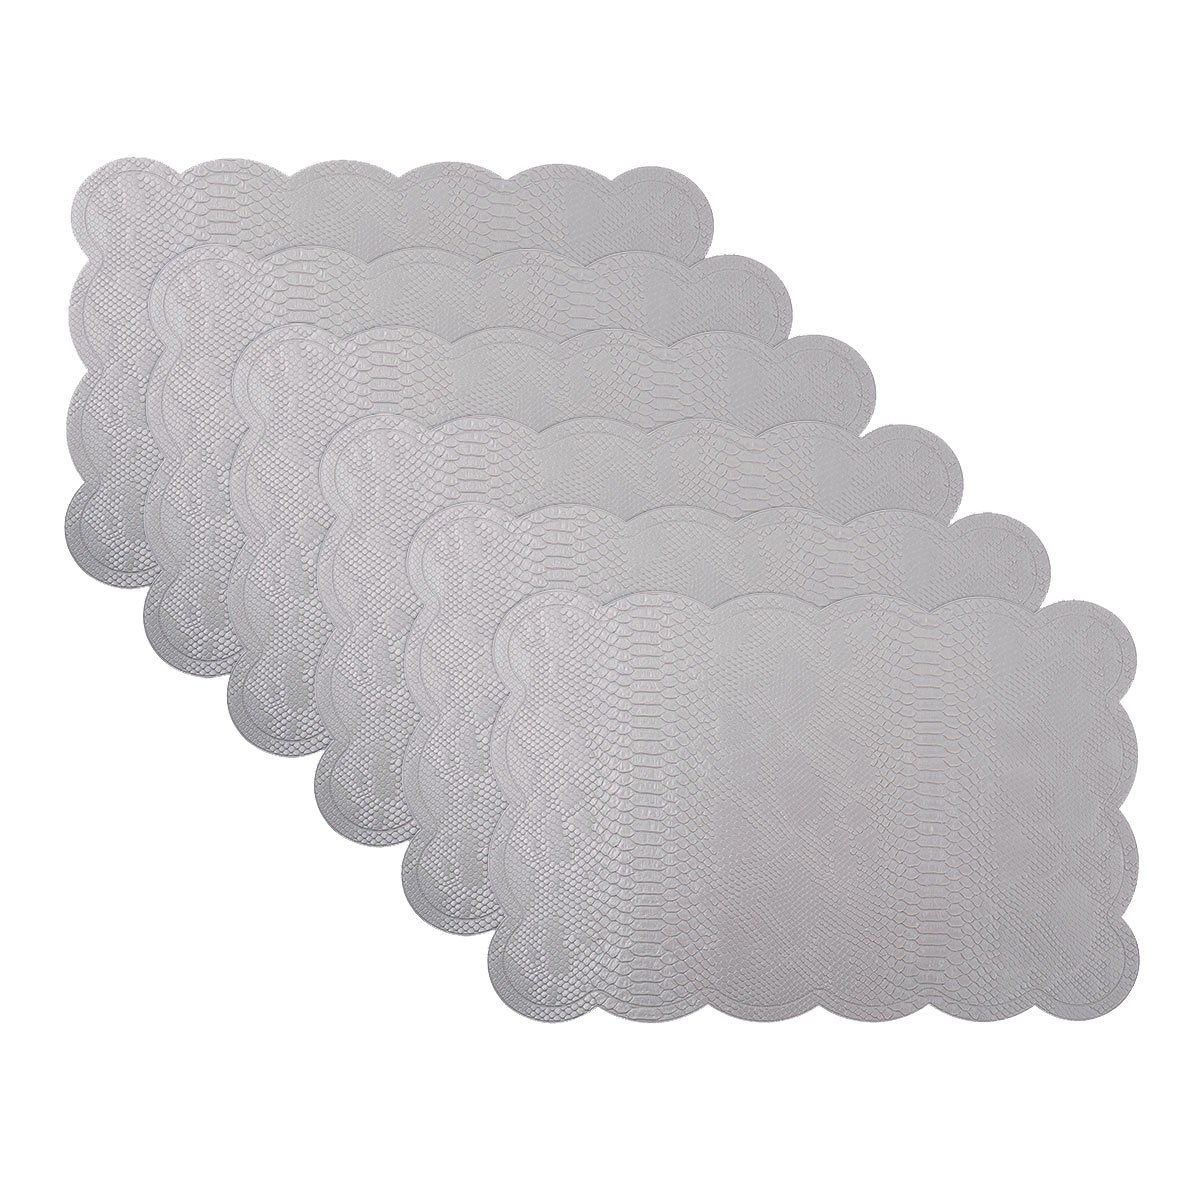 SICOHOME Leather Placemats,Grey Plastic Placemats Home,Set of 6 by SICOHOME (Image #1)